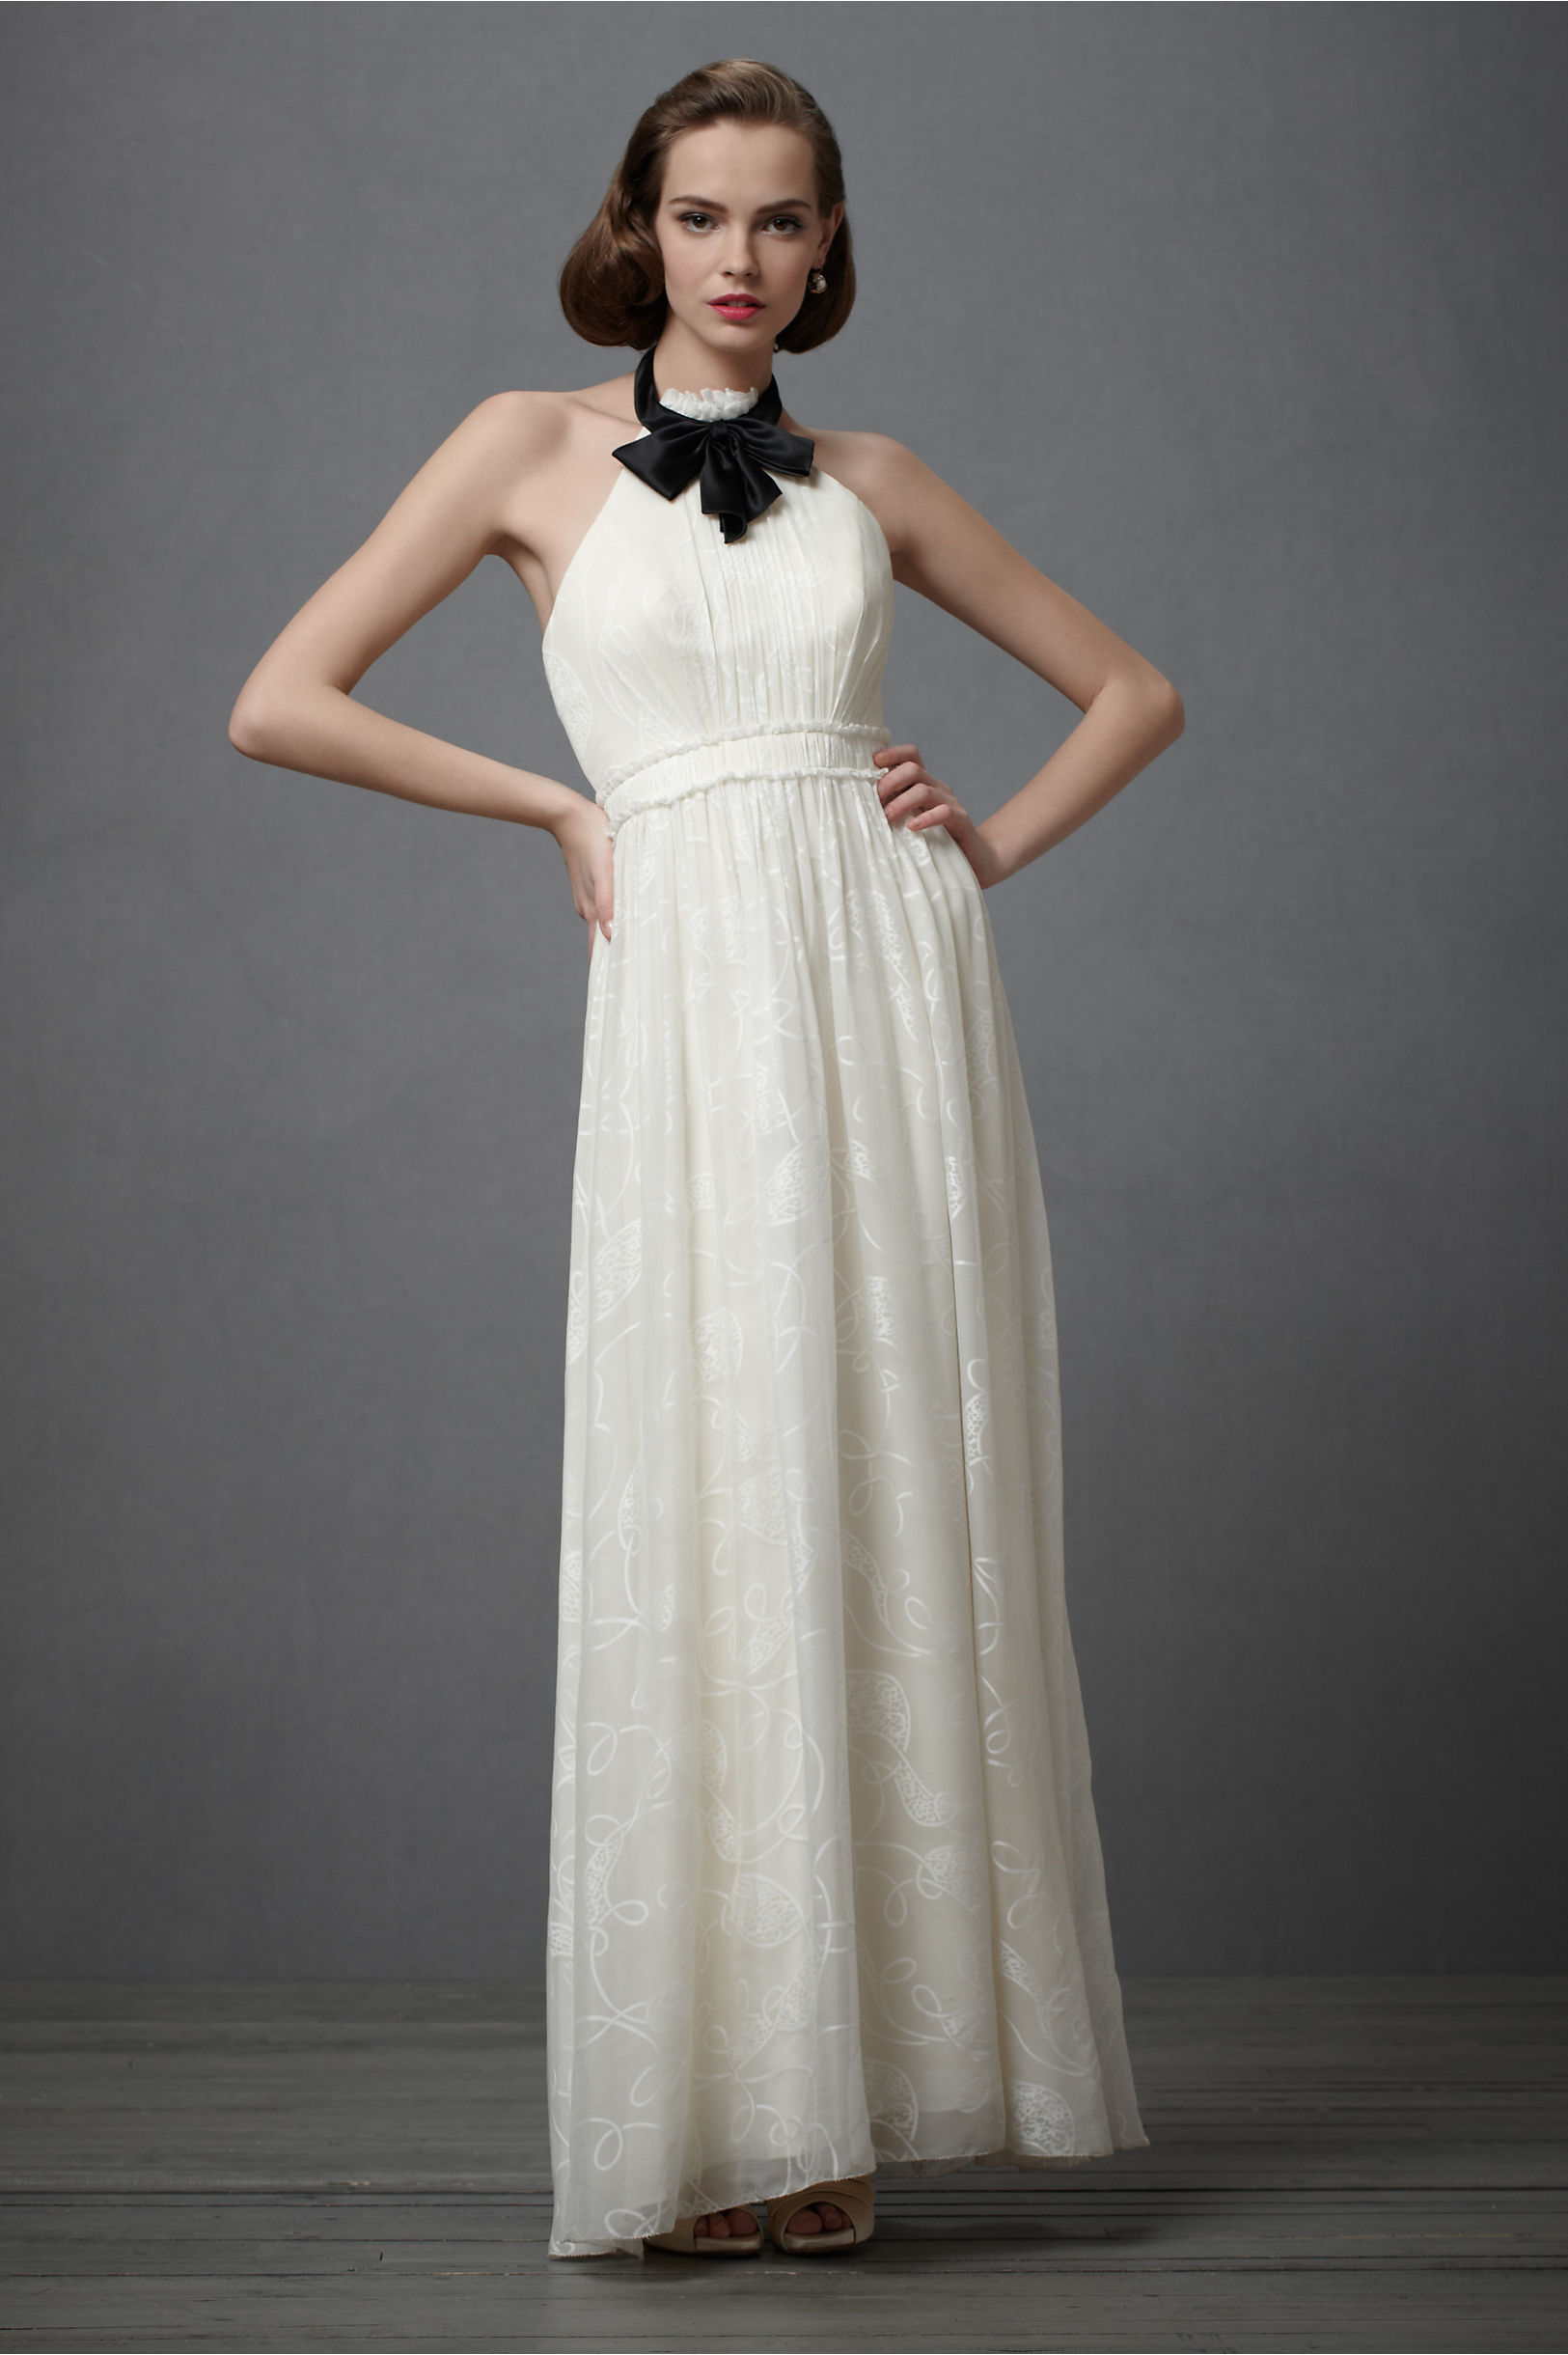 City of Light Gown in Bride | BHLDN